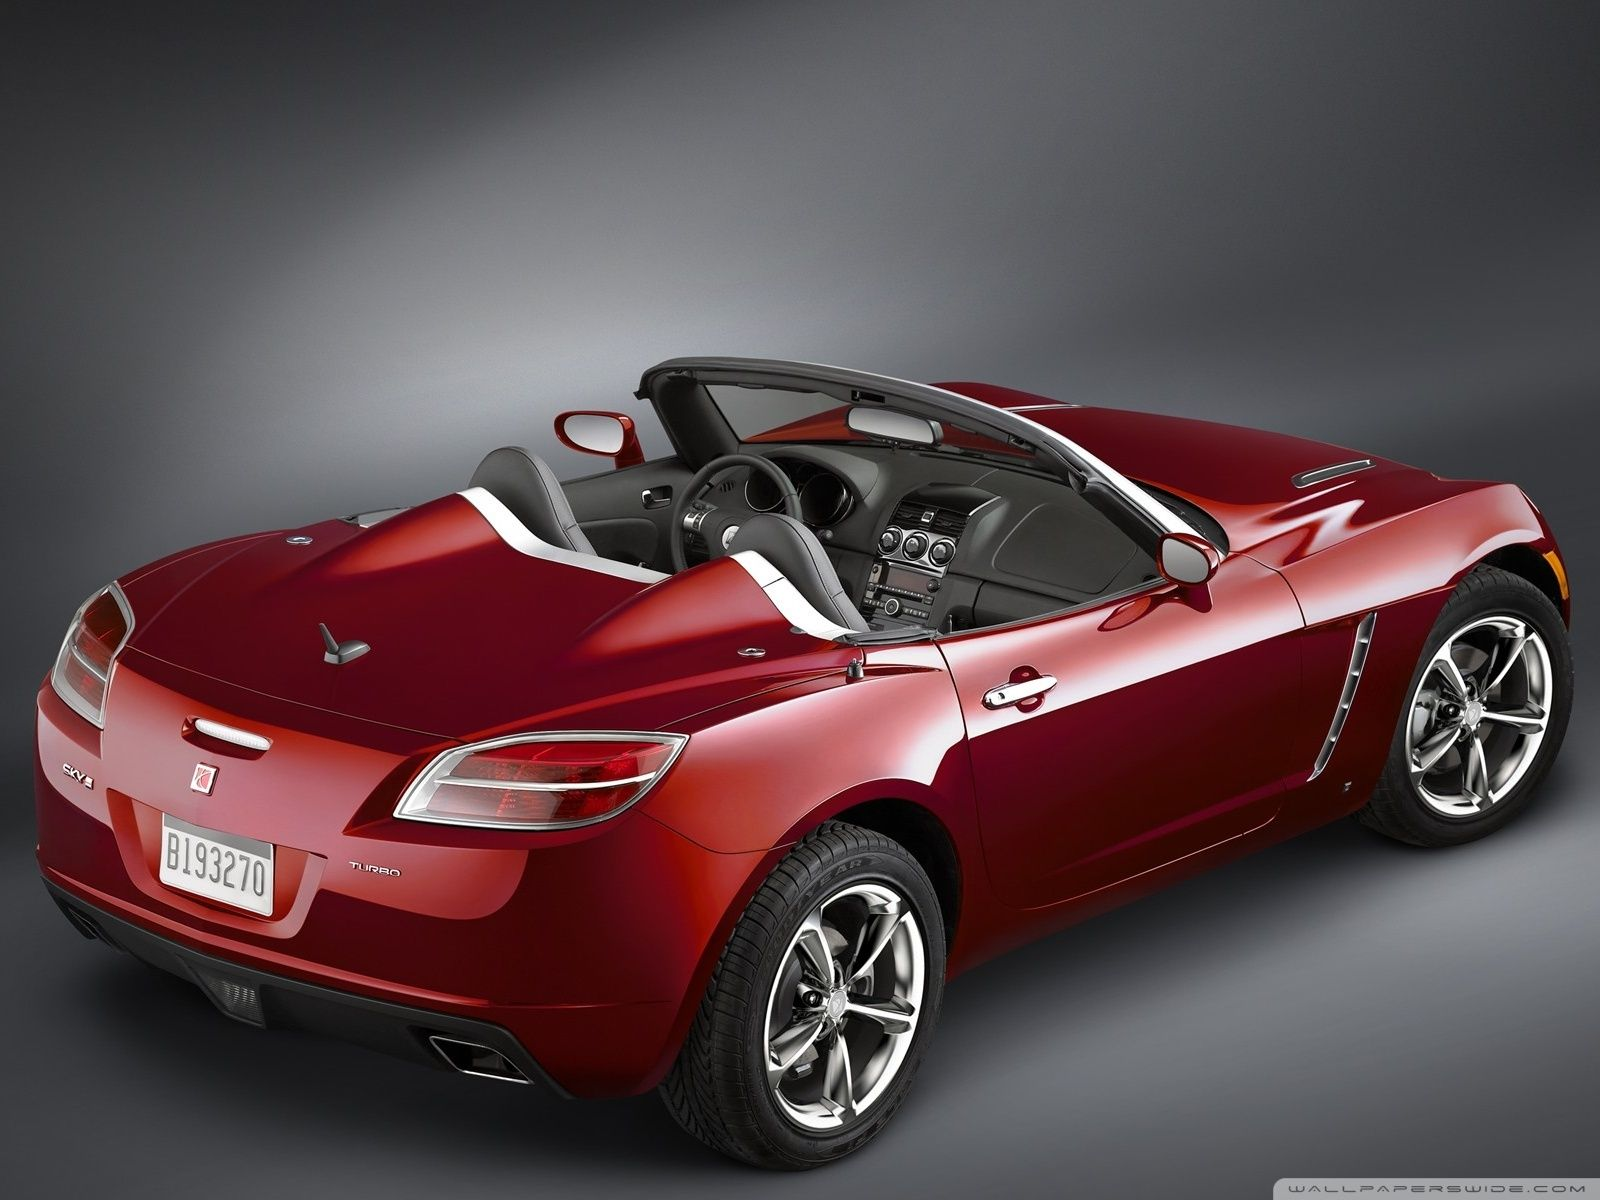 2009 saturn sky roadster convertible nota model year 2009 was the final year